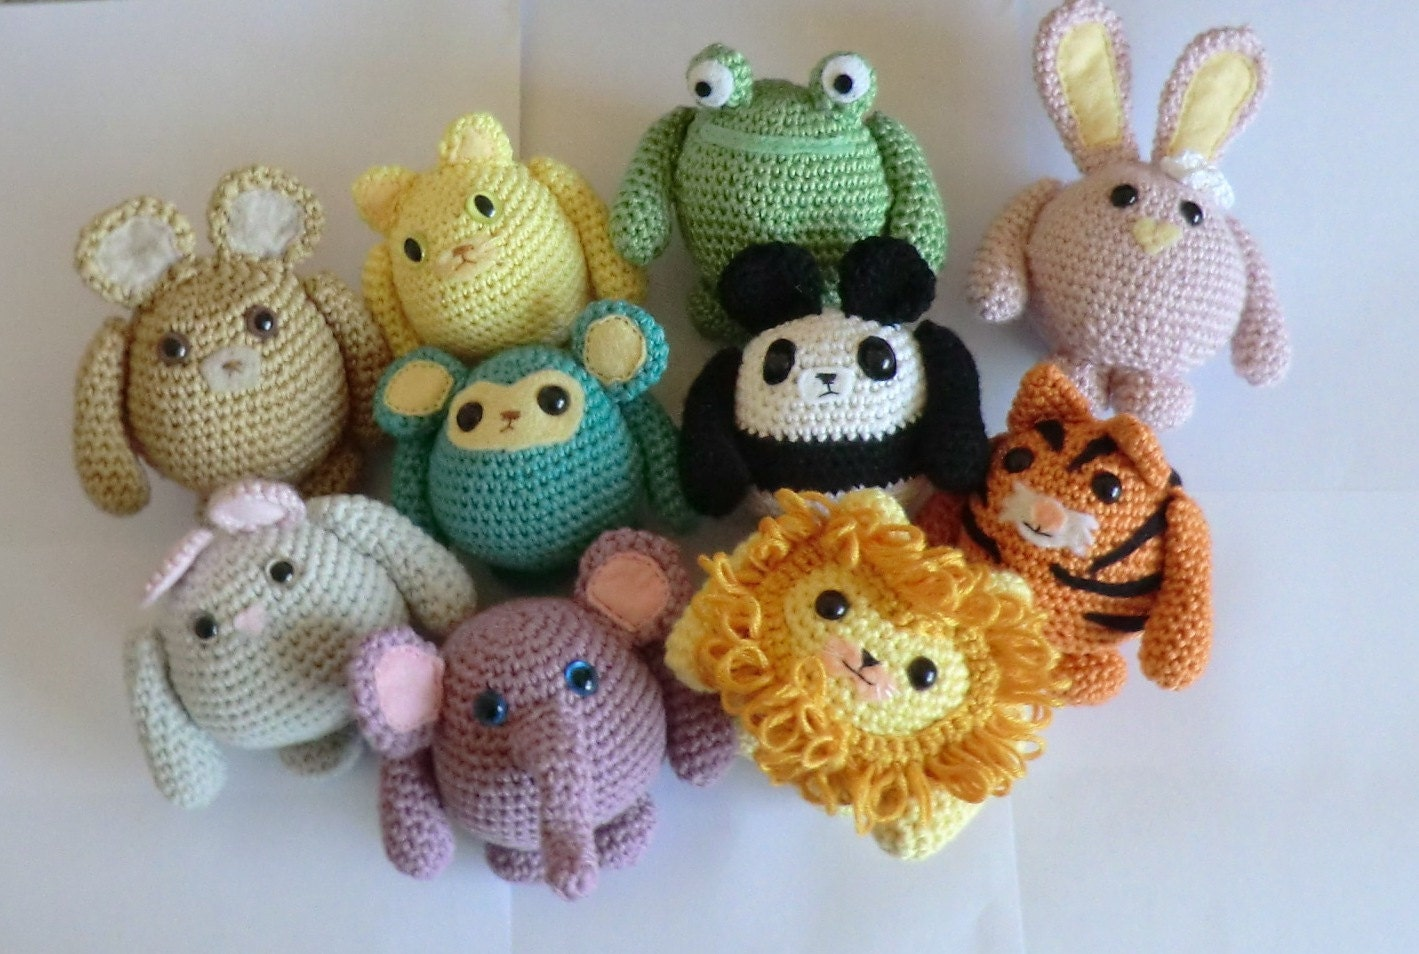 Crochet Patterns Animals : Fat friends animal amigurumi crochet patterns by AmigurumiBarmy